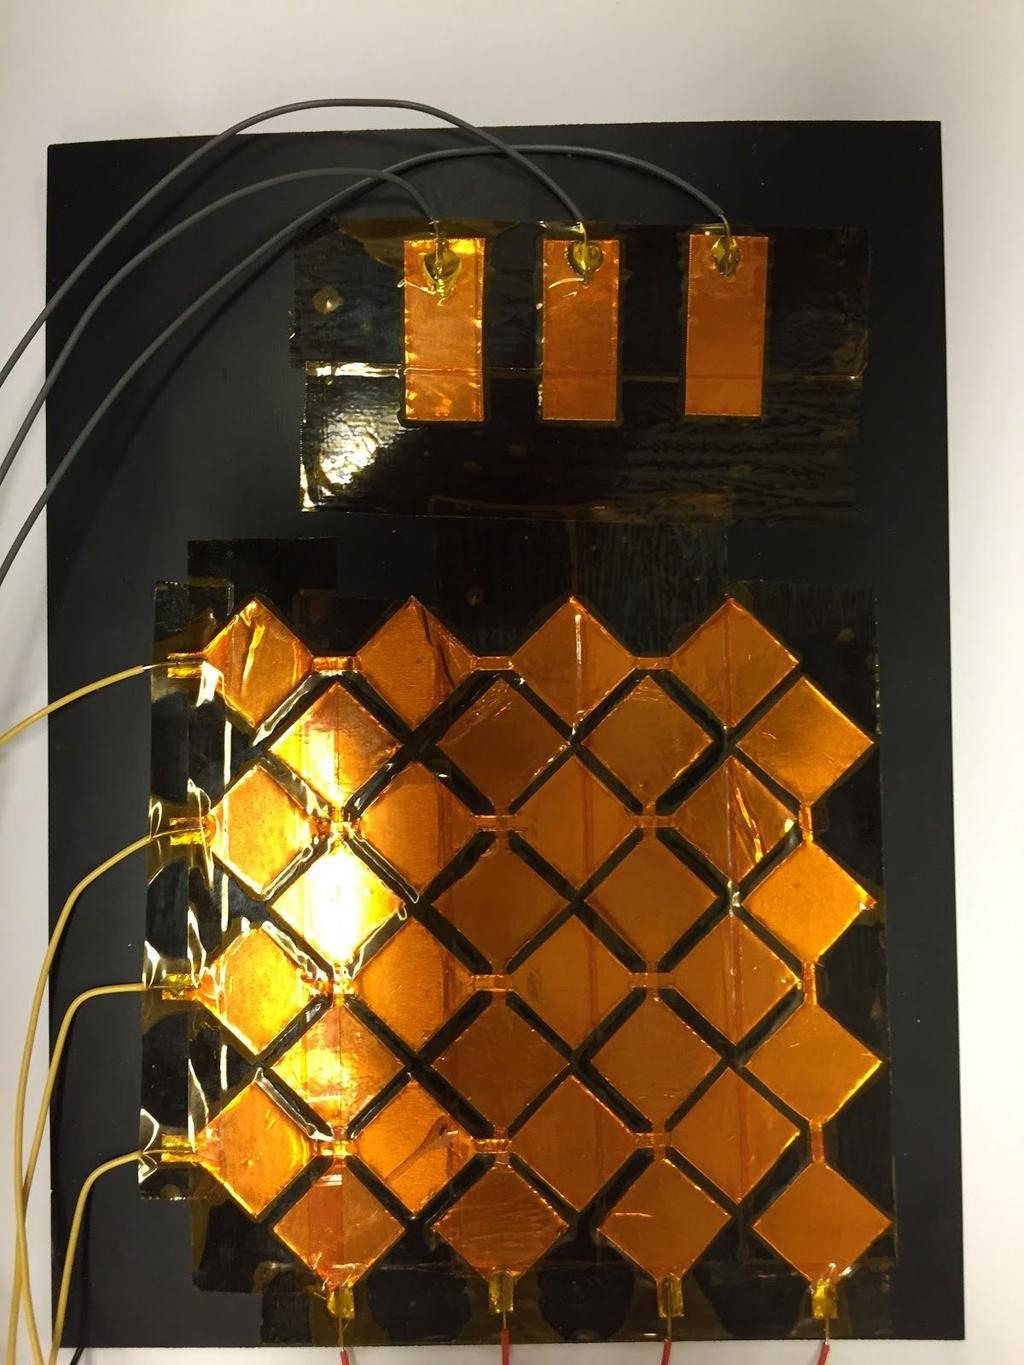 template. To isolate the capacitive plate from the user, the grid and pads were covered in Kapton Tape, a thin, transparent, and electrically insulating material.